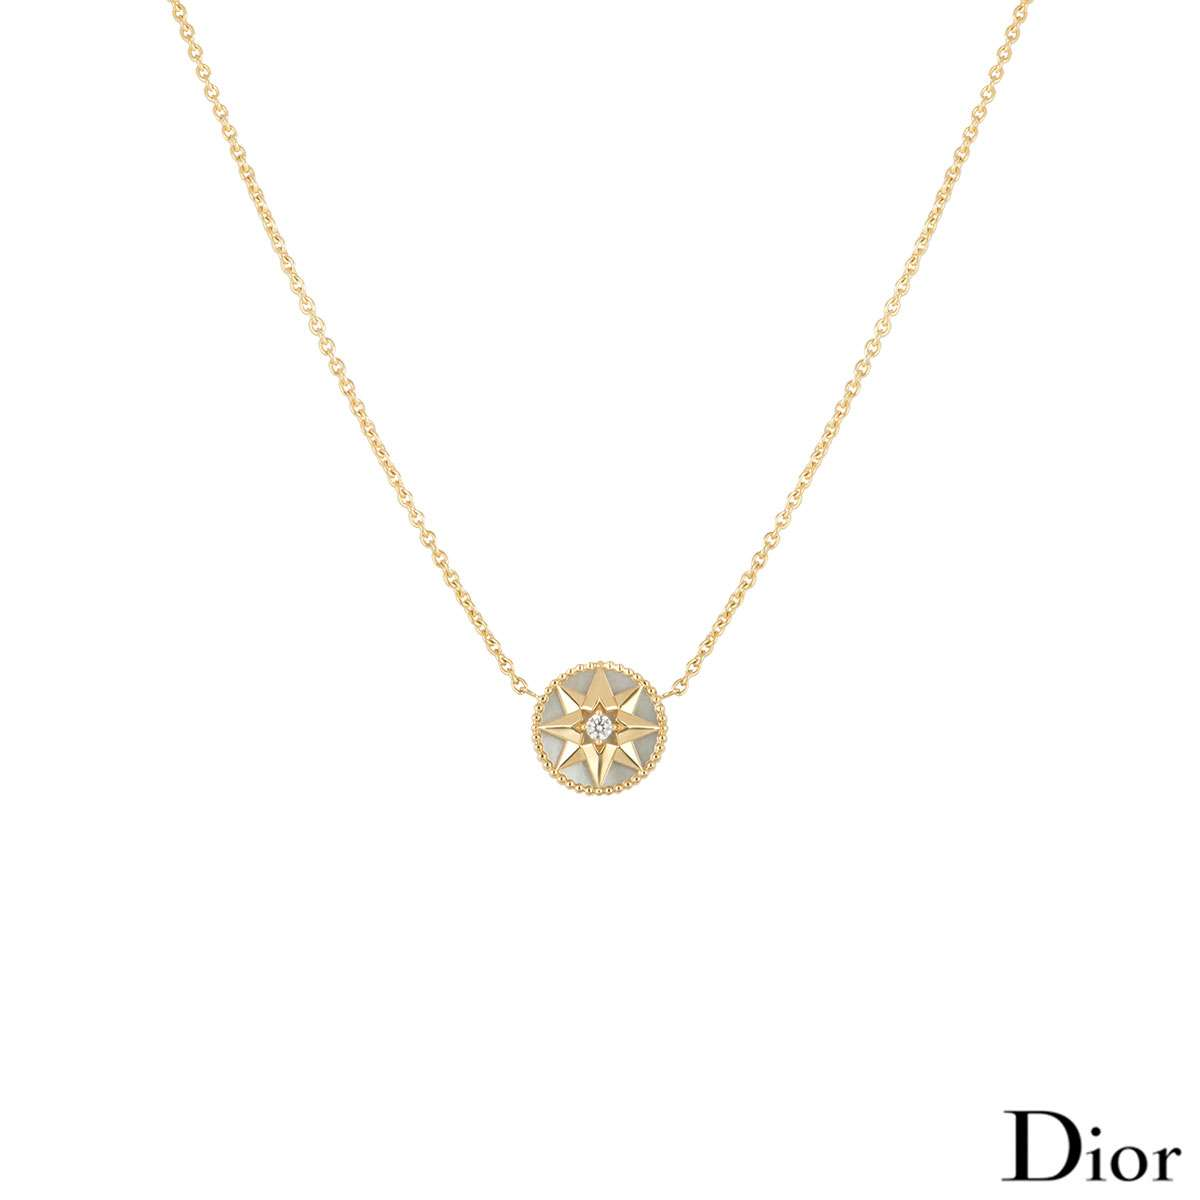 Dior Yellow Gold Rose des Vents Necklace JRDV95005